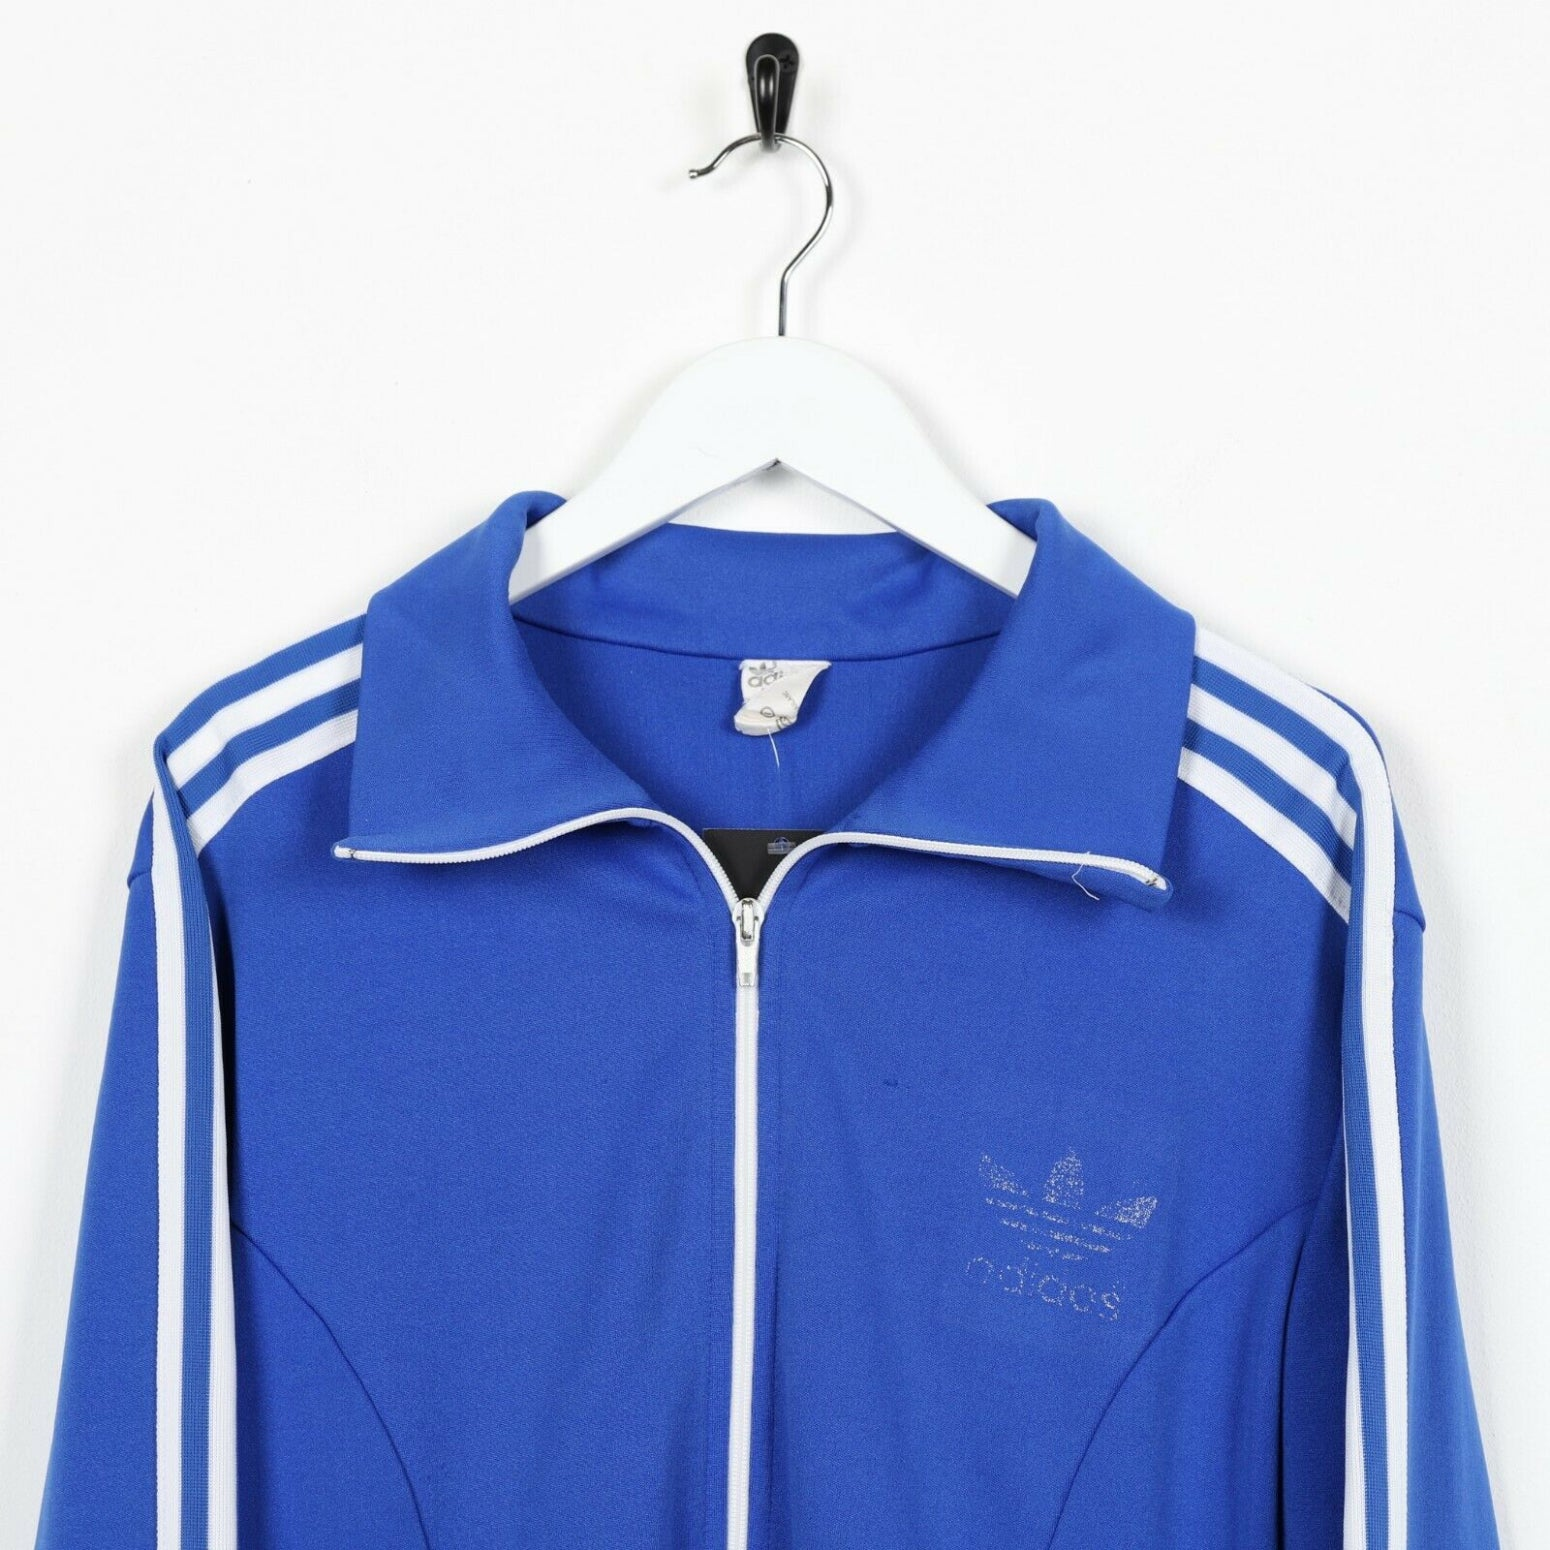 Vintage ADIDAS Small Logo Track Top Jacket Blue Medium M